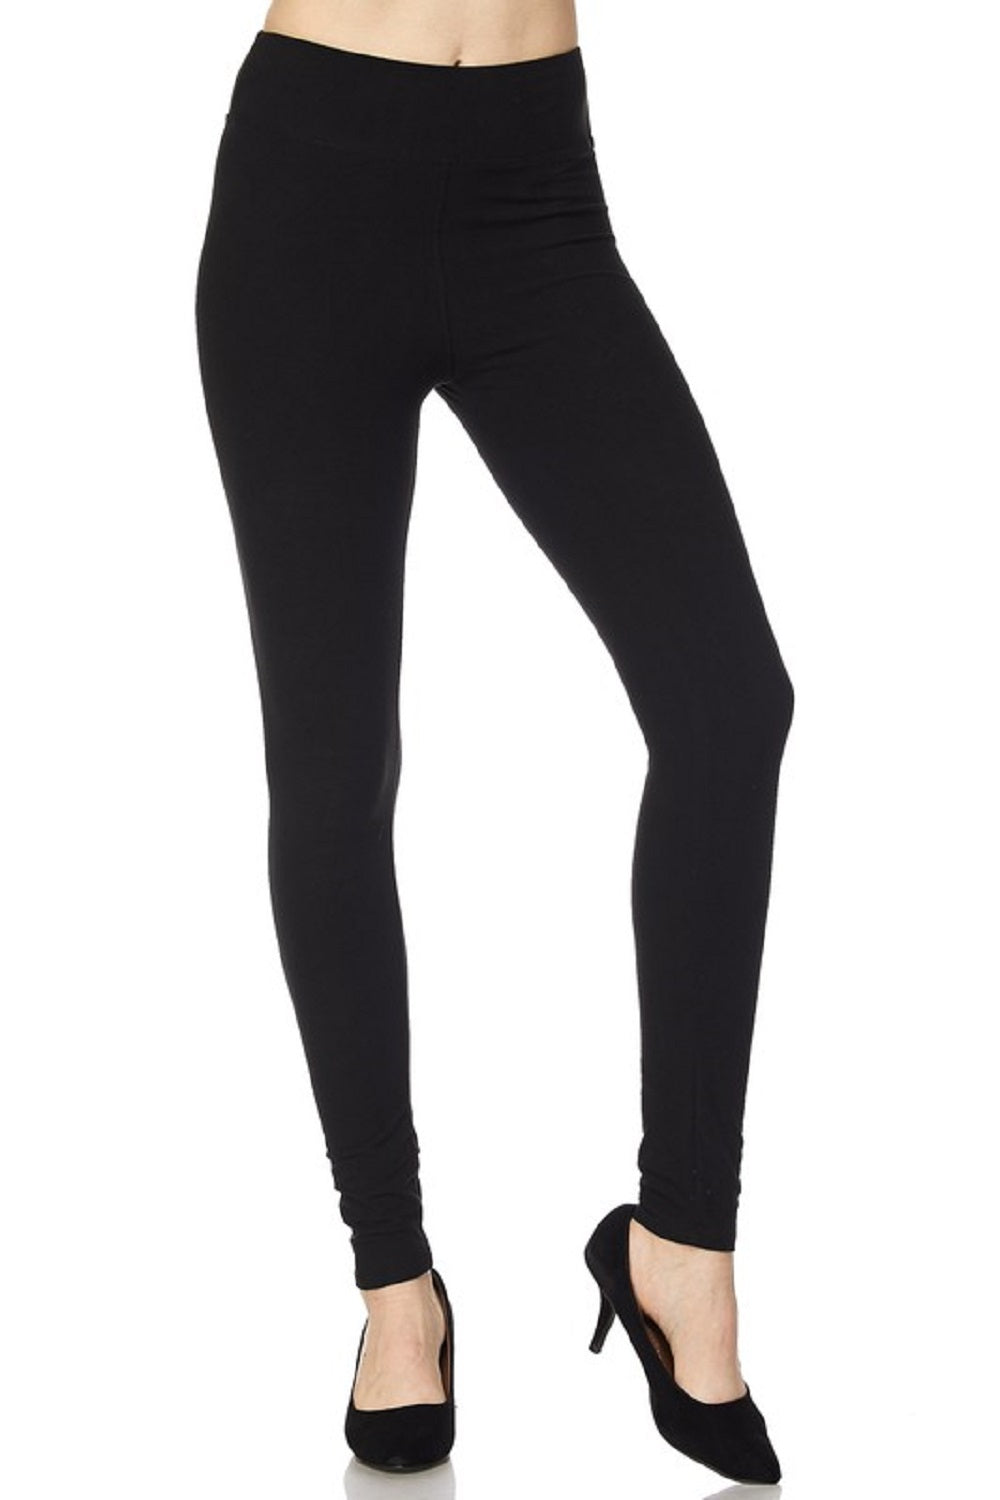 Ladies Leggings, New Mix by New Kathy 3 inch waistband Soft Regular or Plus Size - SE Collegiate Gifts